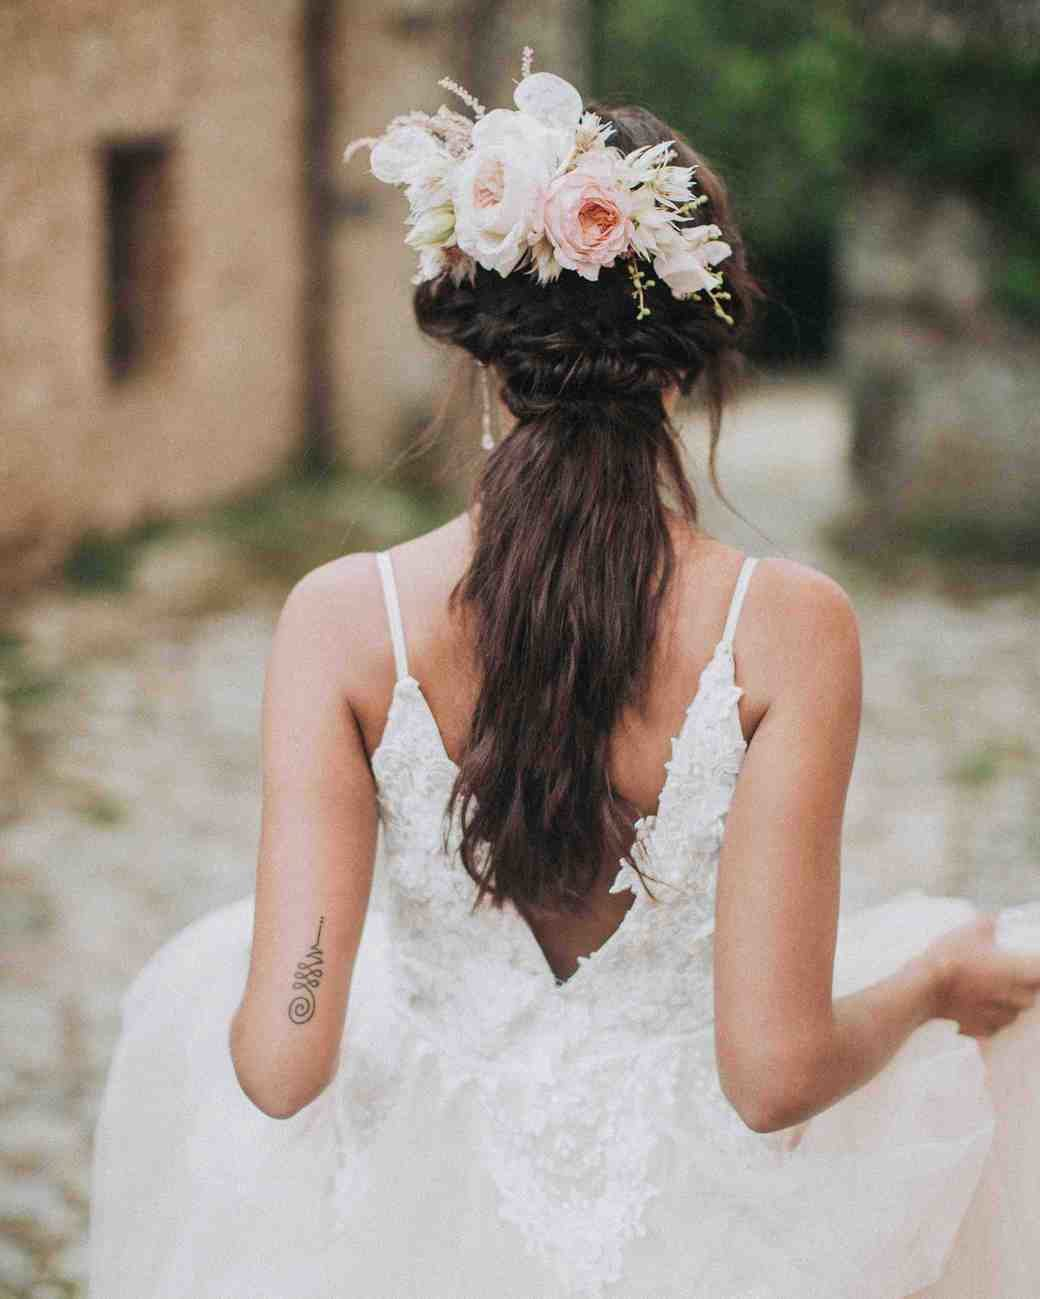 The Best Modern Wedding Hairstyles For The Cool Contemporary Bride Pictures